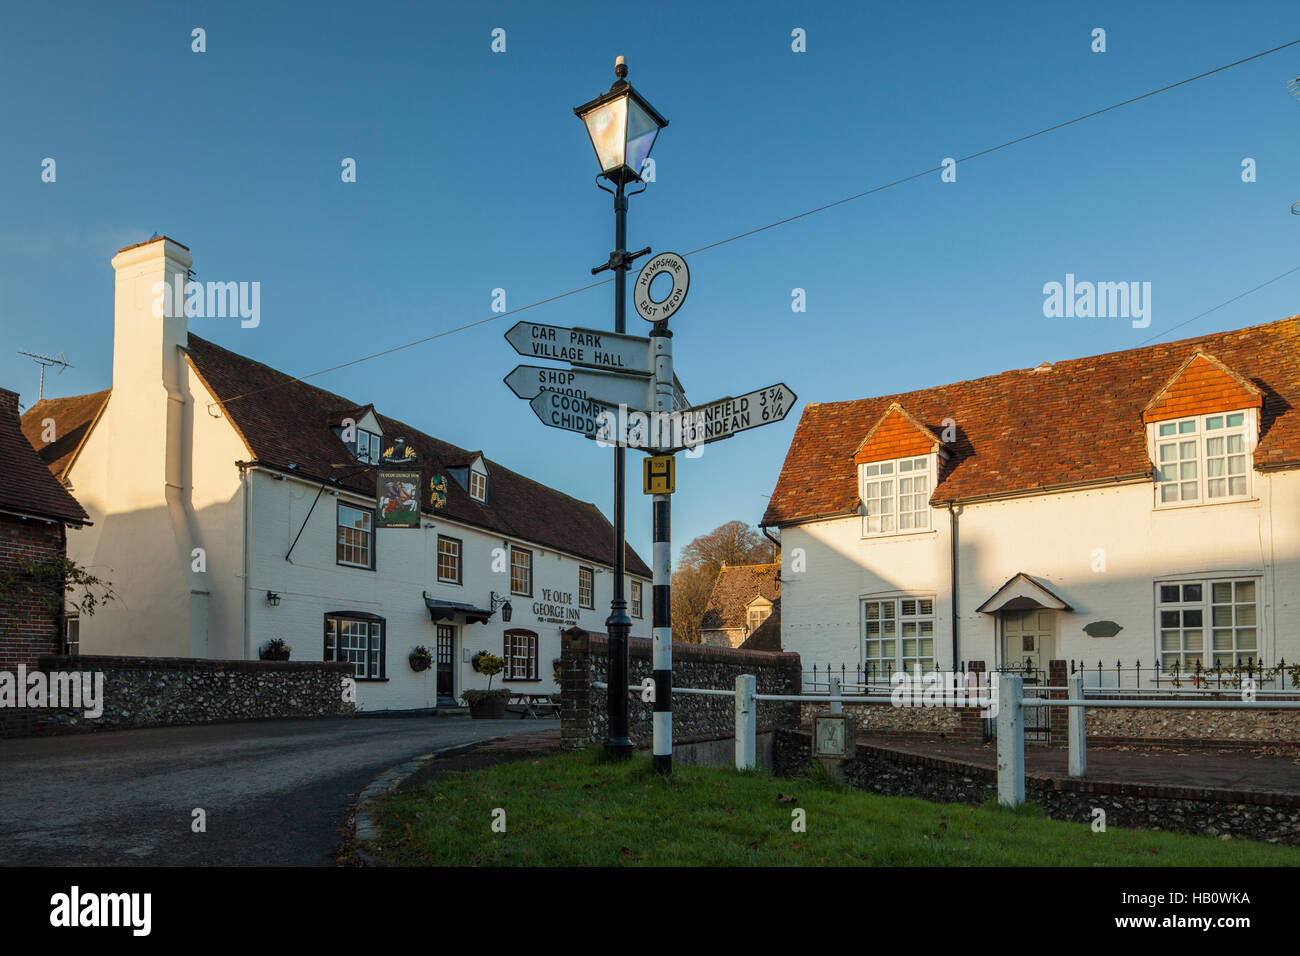 Autumn afternoon in East Meon, Hampshire, England. - Stock Image